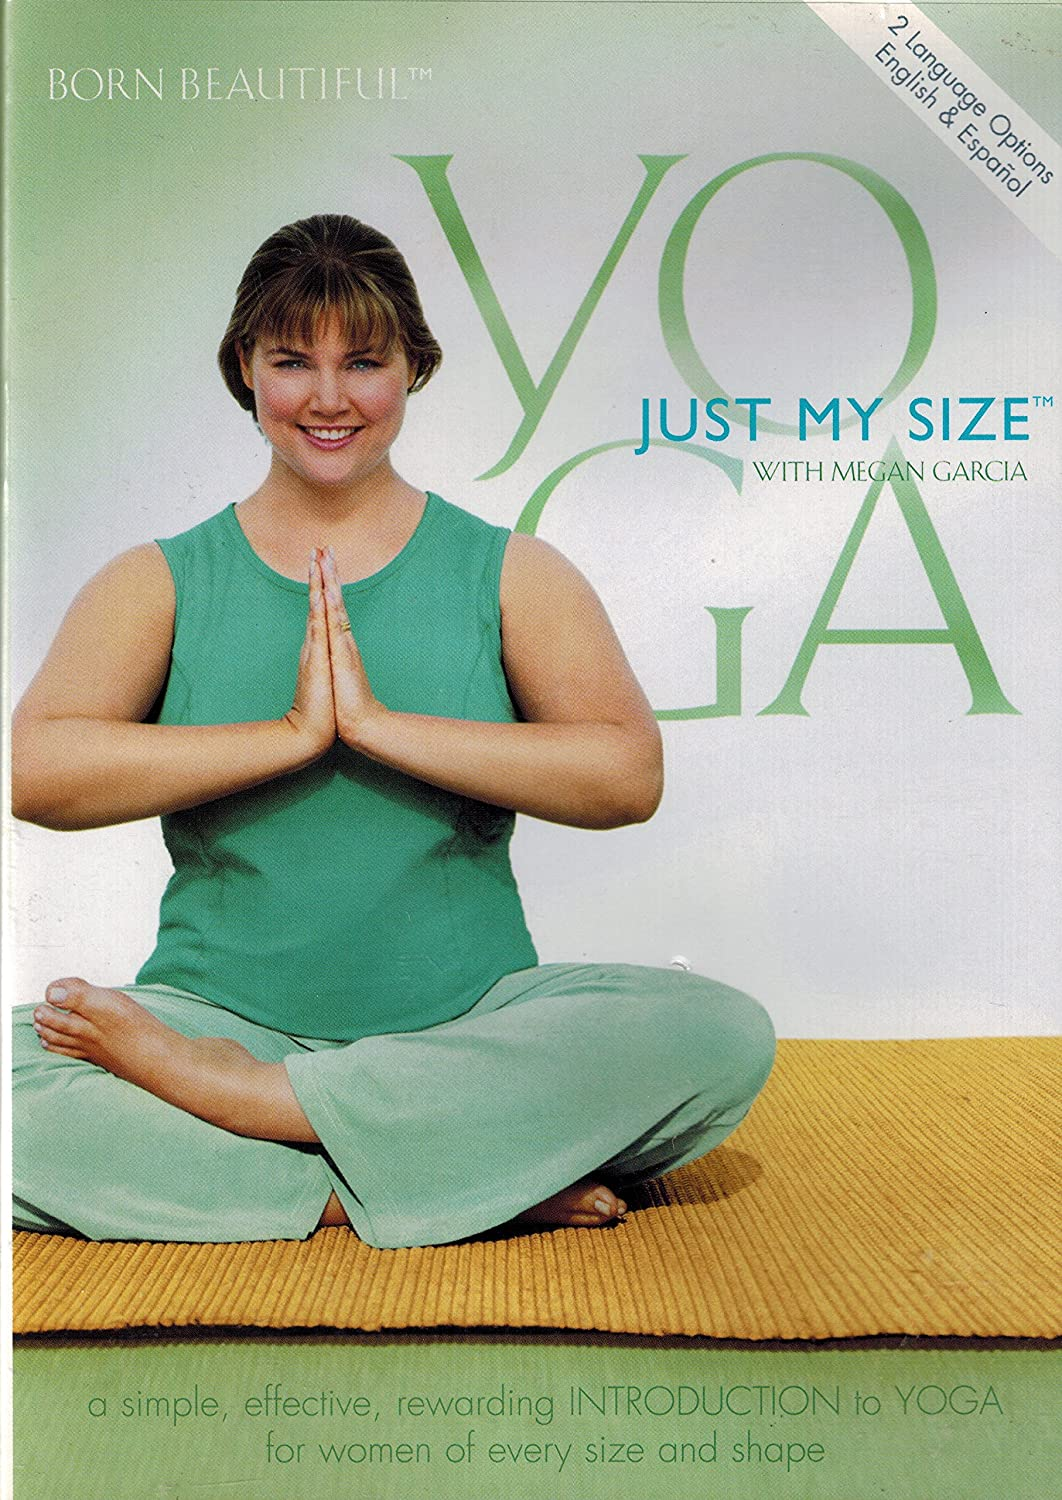 Amazon.com: Yoga: Just My Size With Megan Garcia: Megan ...